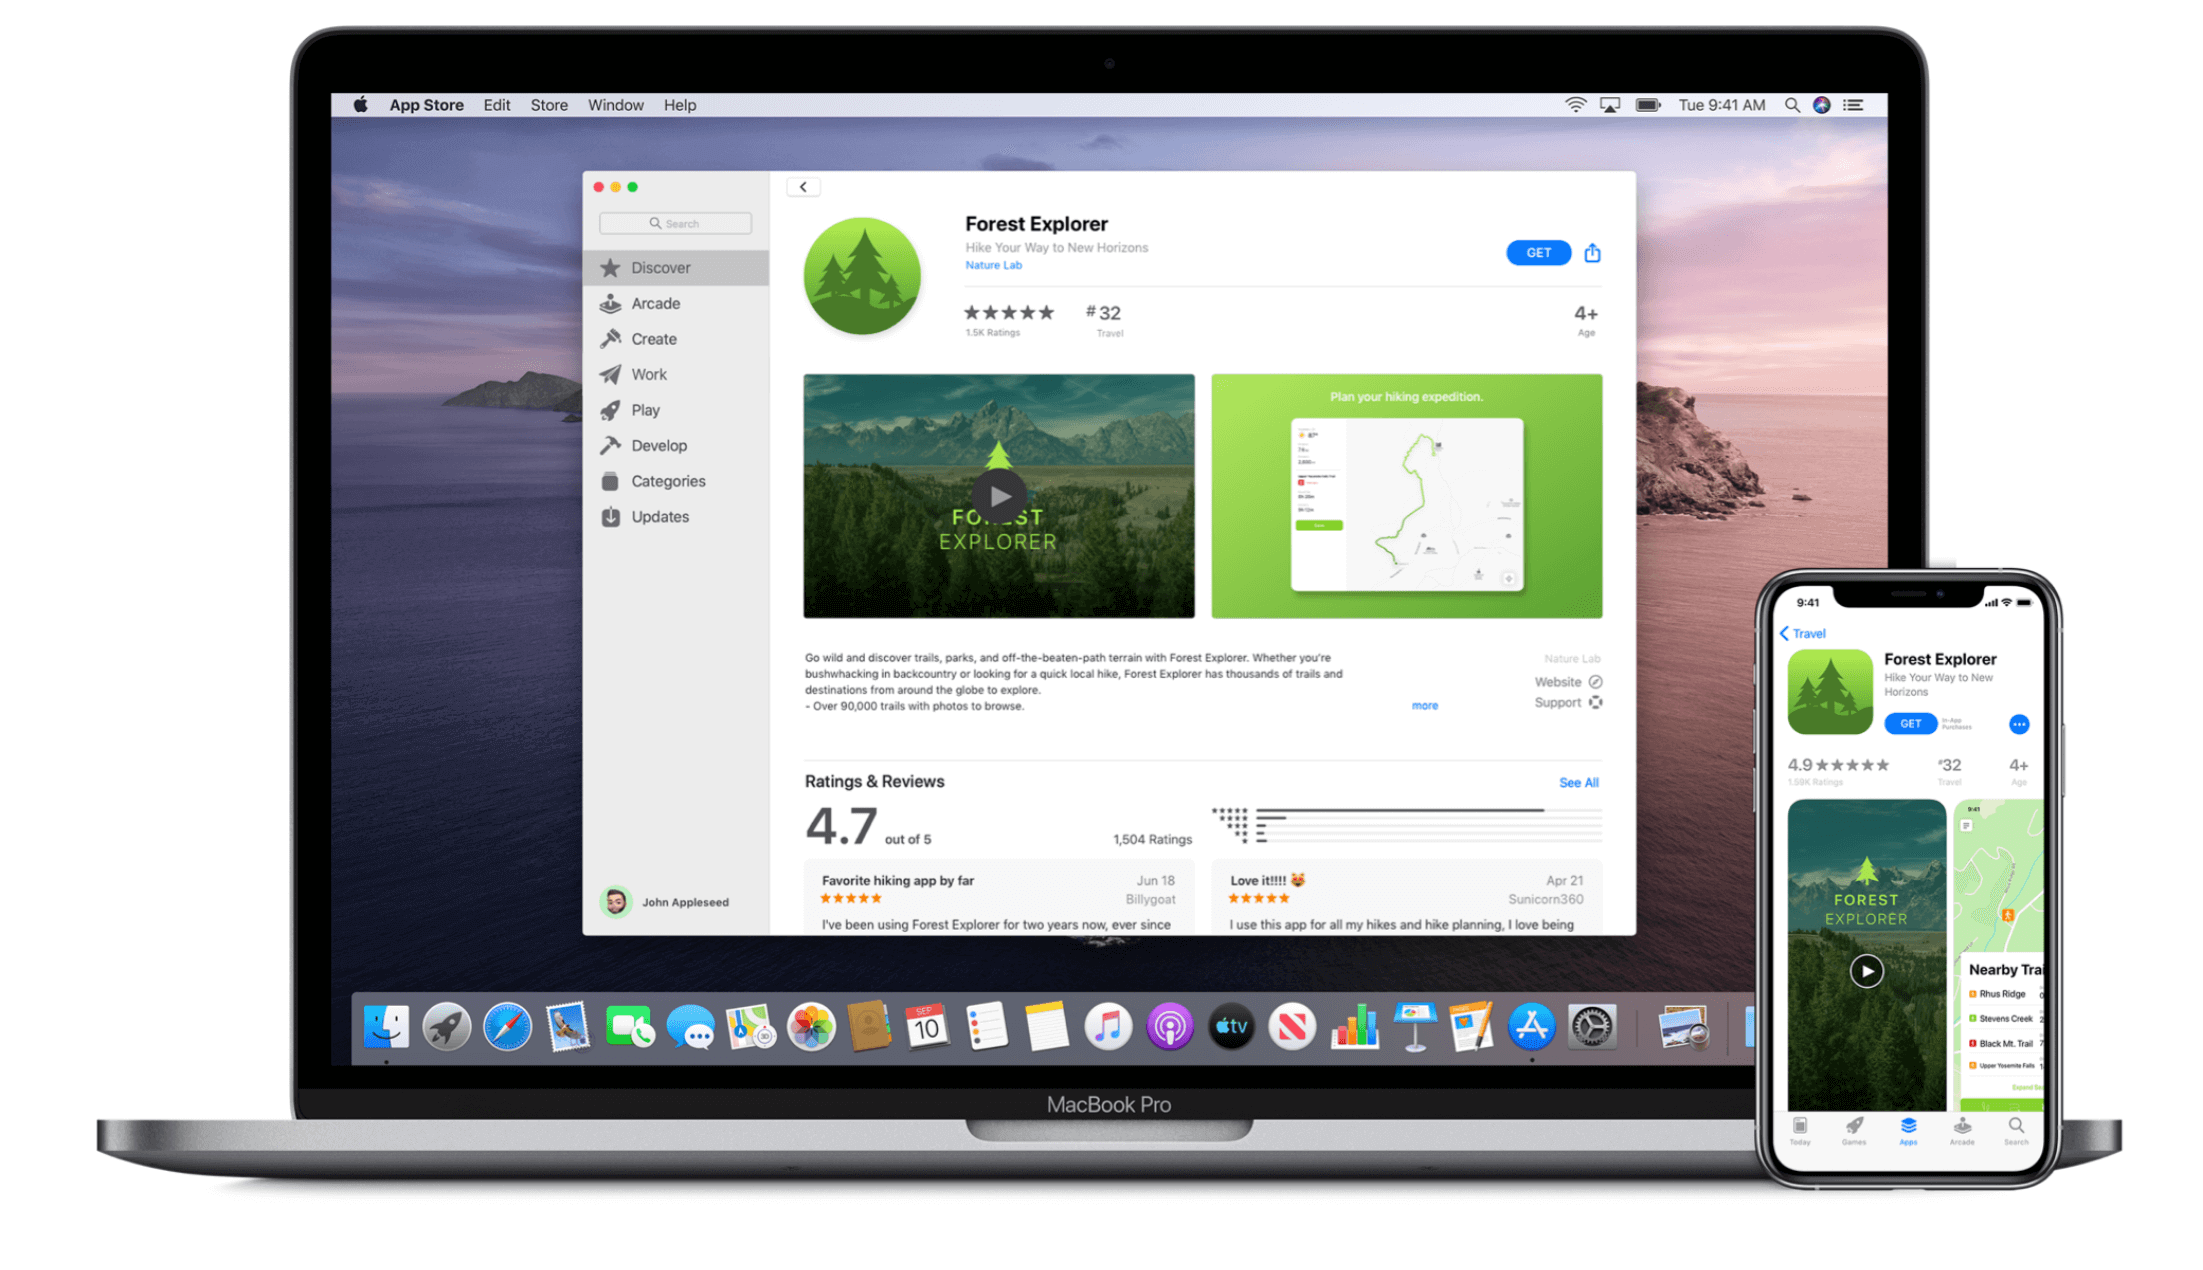 App Store Product Page Optimization